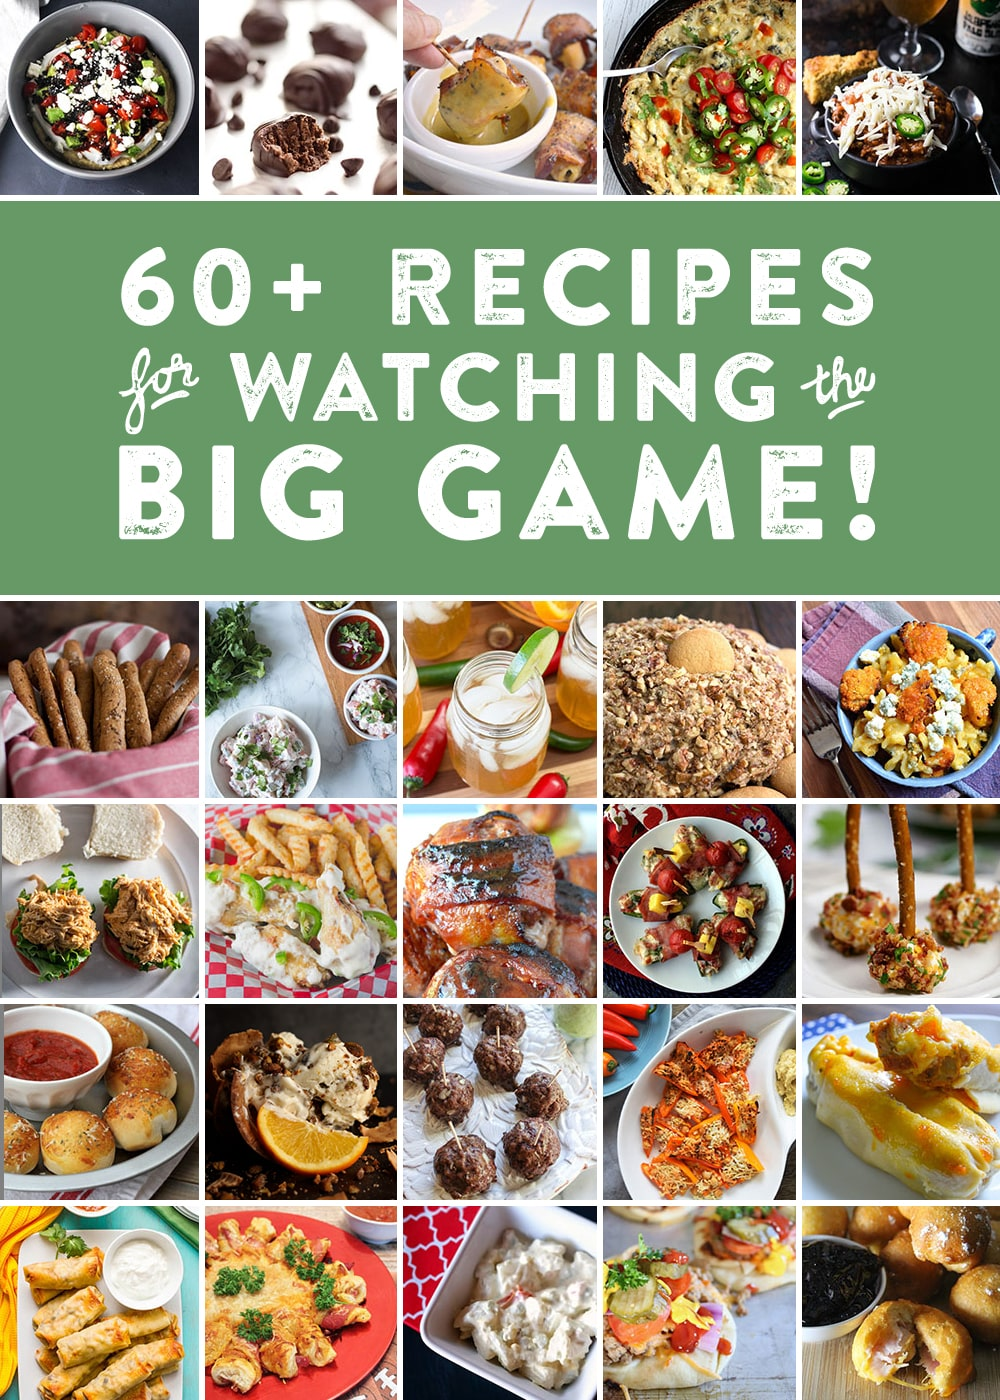 I've teamed up with my football blogger friends in one final collaboration to bring you some brilliant Big Game recipe ideas. We've made appetizers, entrees, desserts and even drinks. Prepare to be inspired, and be sure to check out their links by clicking on the photo!